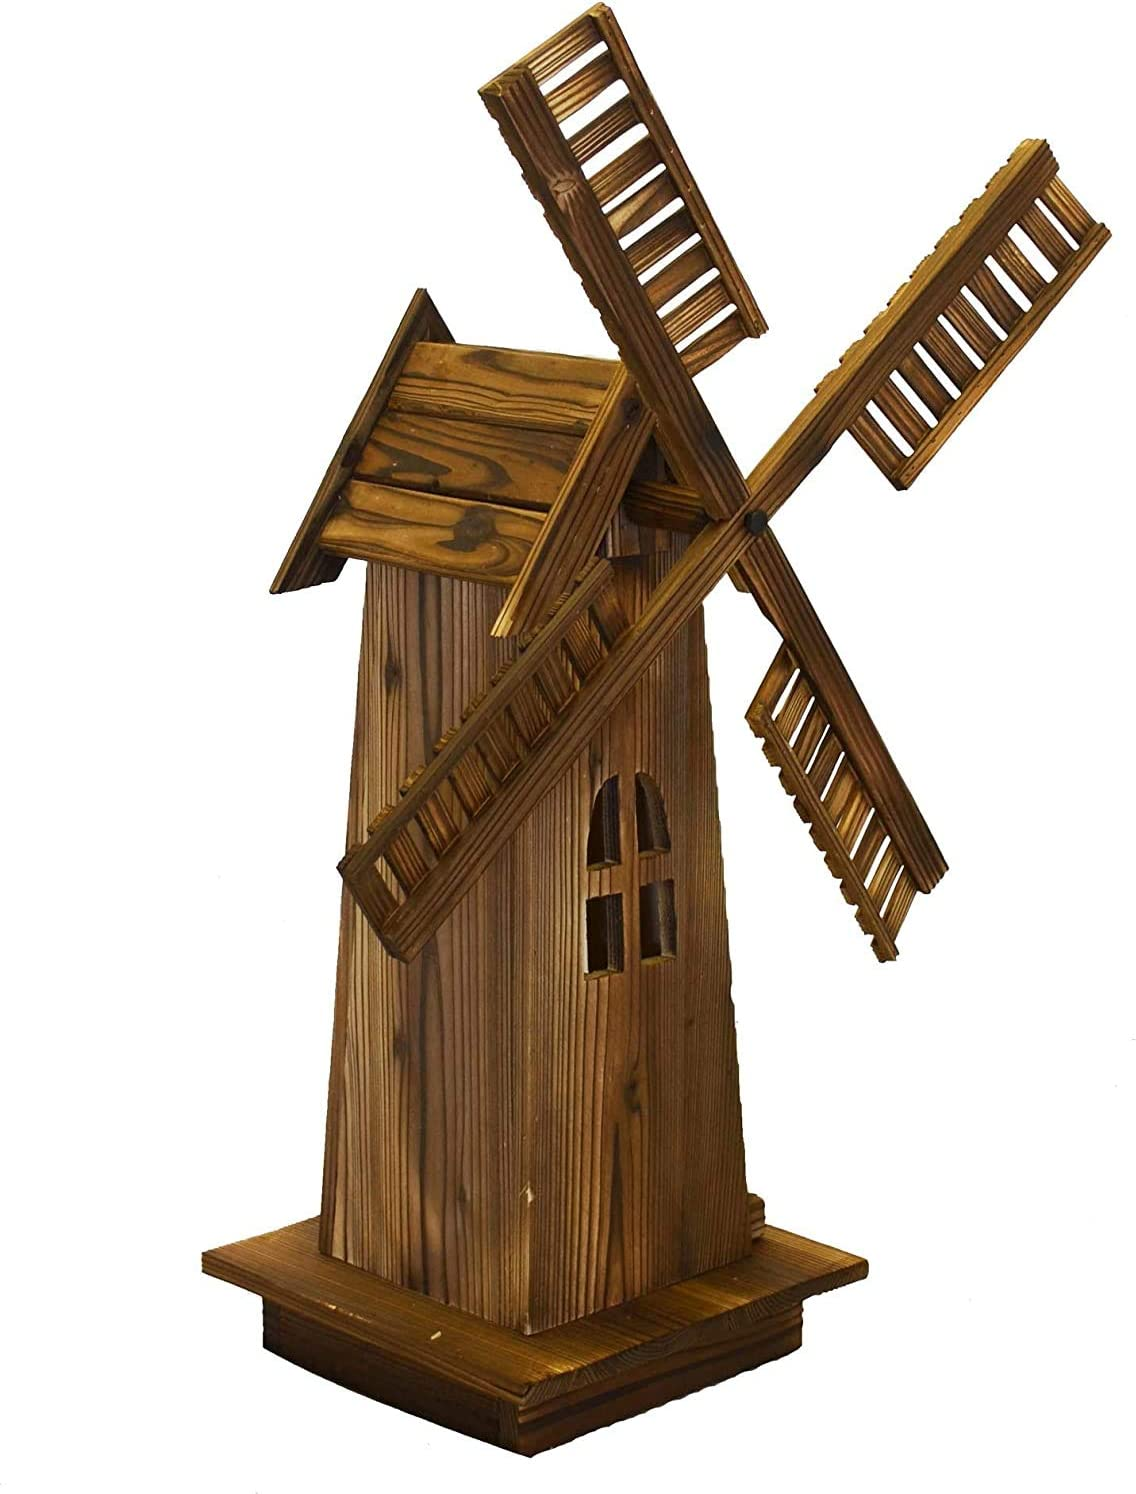 PierSurplus Wooden Dutch Windmill Back Yard Decorations - Classic Old-Fashioned Windmill for Garden, Patio-34 in Tall